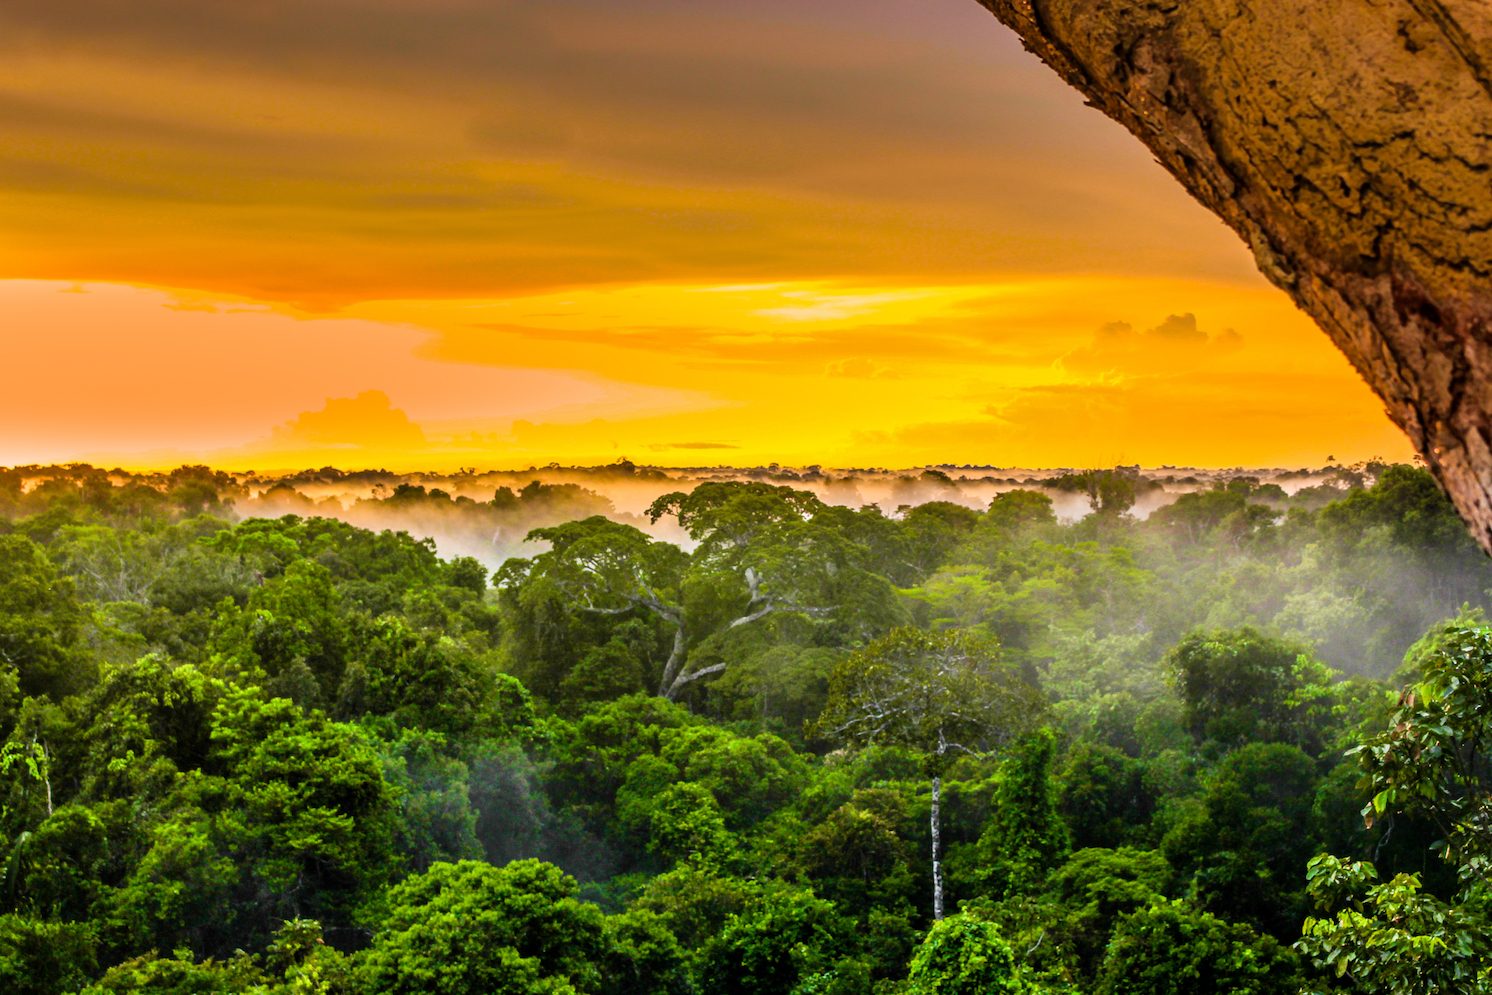 new research is emerging that suggests that the Amazon rainforest has a naturally-occurring border that gives it staying power.